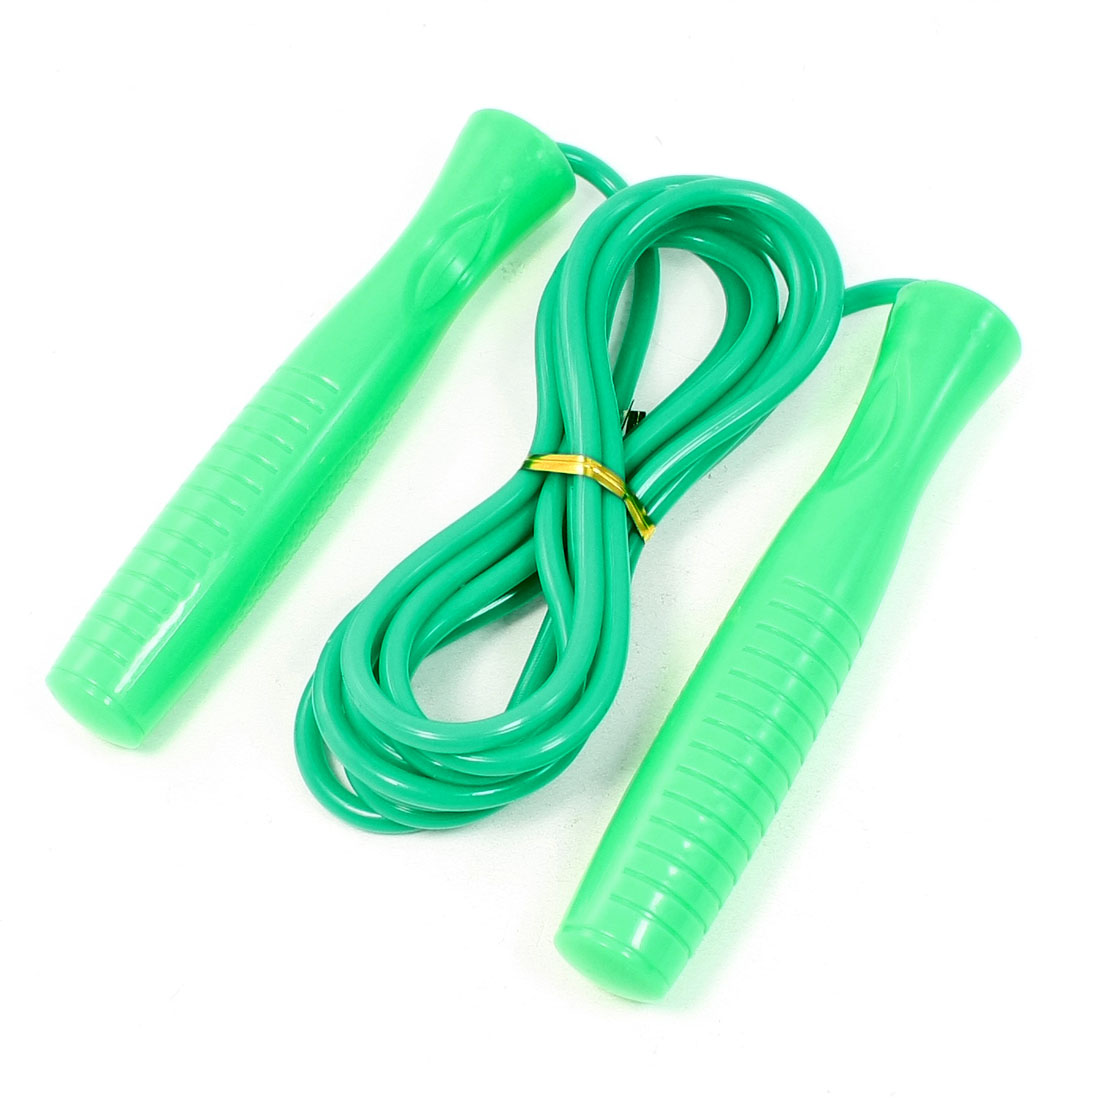 Anti Slip Hard Plastic Grip Plastic Flexible Skipping Rope Green 9.2Ft